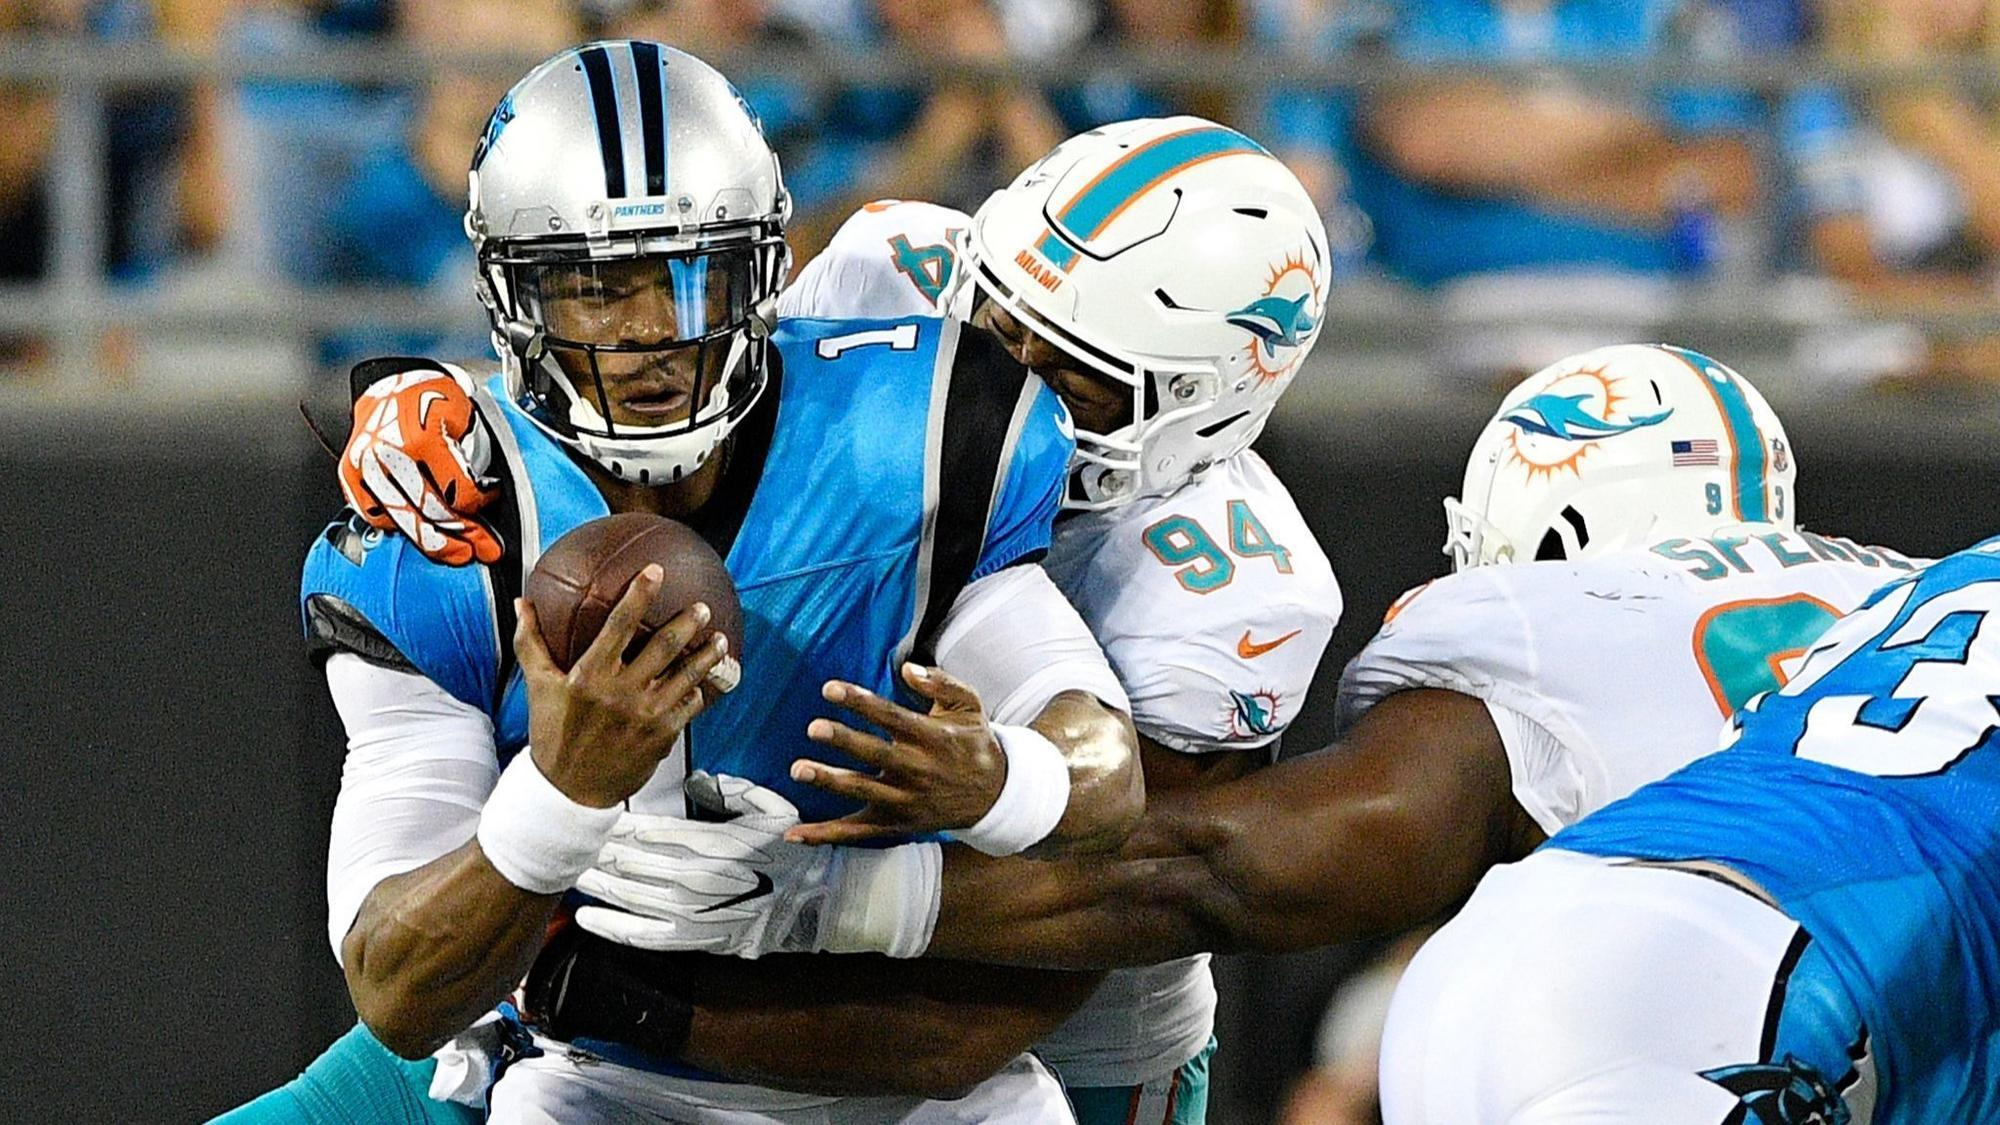 Fl-sp-hyde10-dolphins-carolina-thoughts-20180817